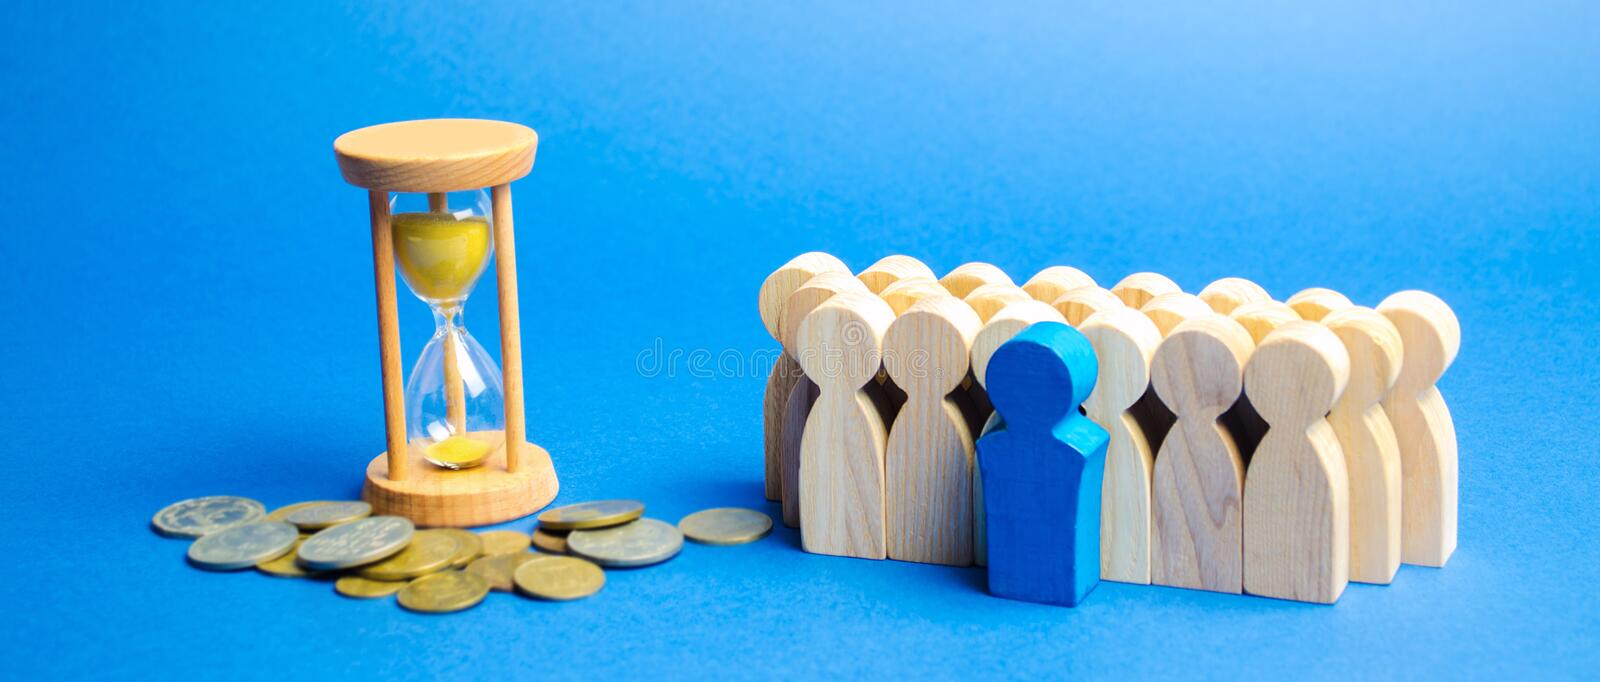 Hourglass, coins and a team of workers. Time management and distribution. Concept of saving money. Planning work. Business. Strategy and investment. Performance stock image